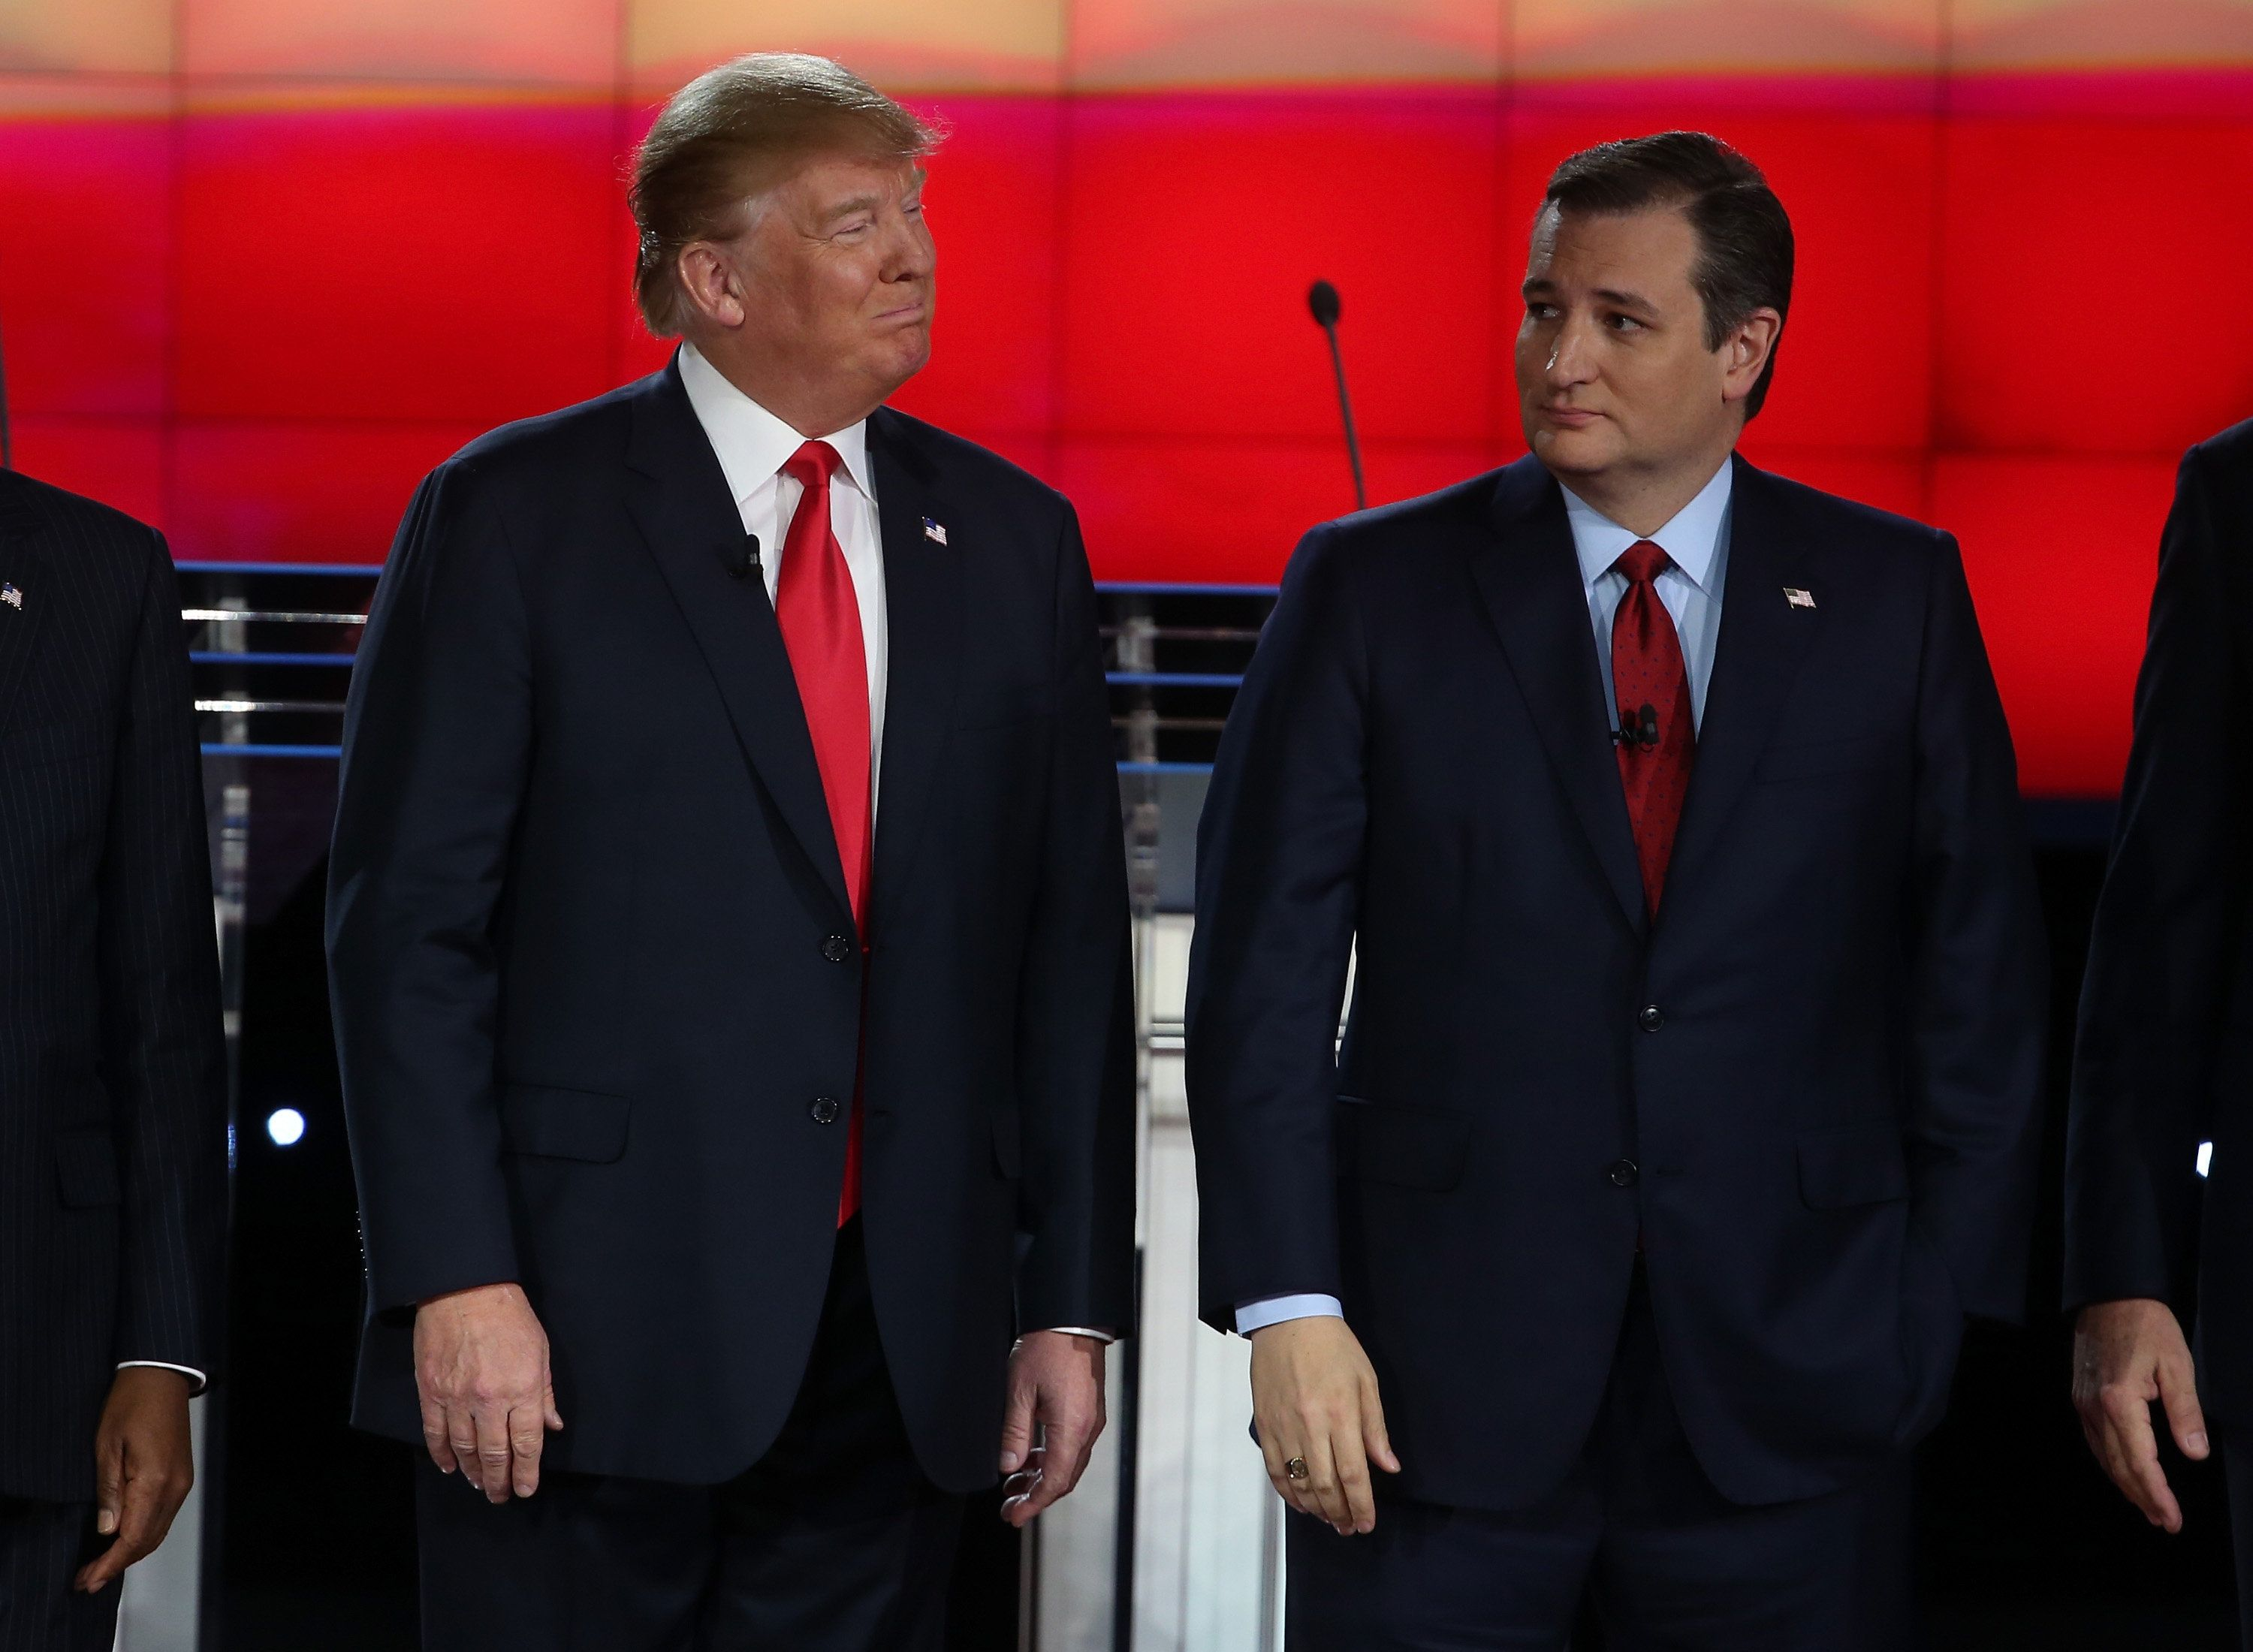 Though Donald Trump, left, has questioned whether Canadian-born Ted Cruz is eligible to be president, a majority ofAmer